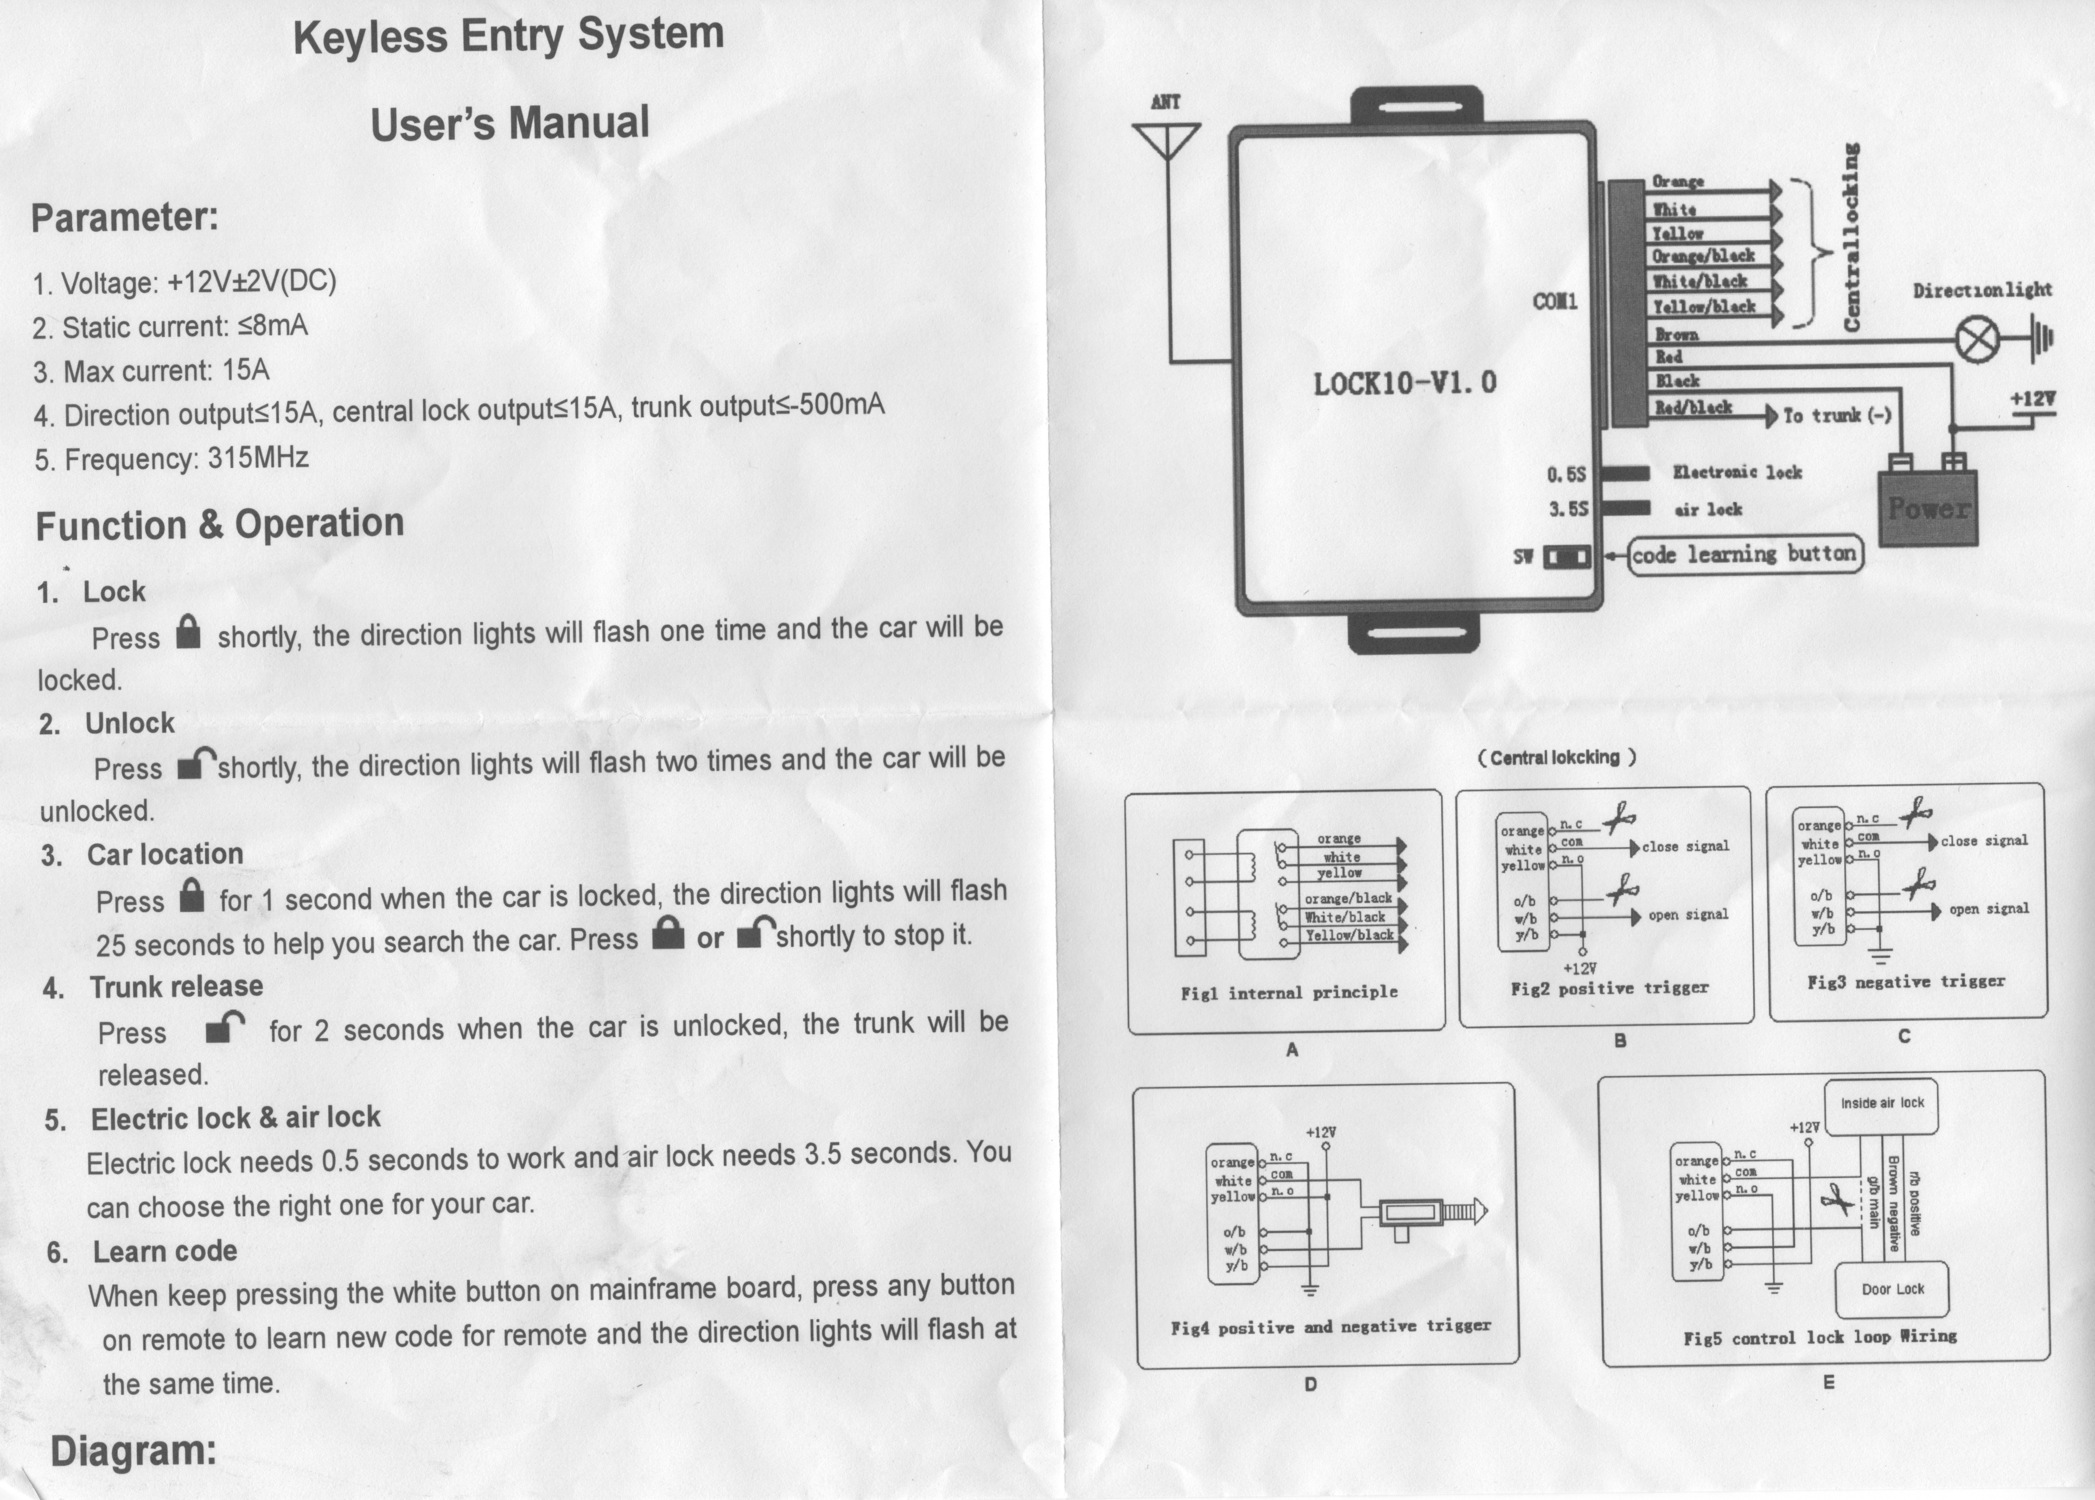 Diagram For Keyless Entry Systems Beginners Wiring Remote System To Garage Chinese Users Manual With Schematics